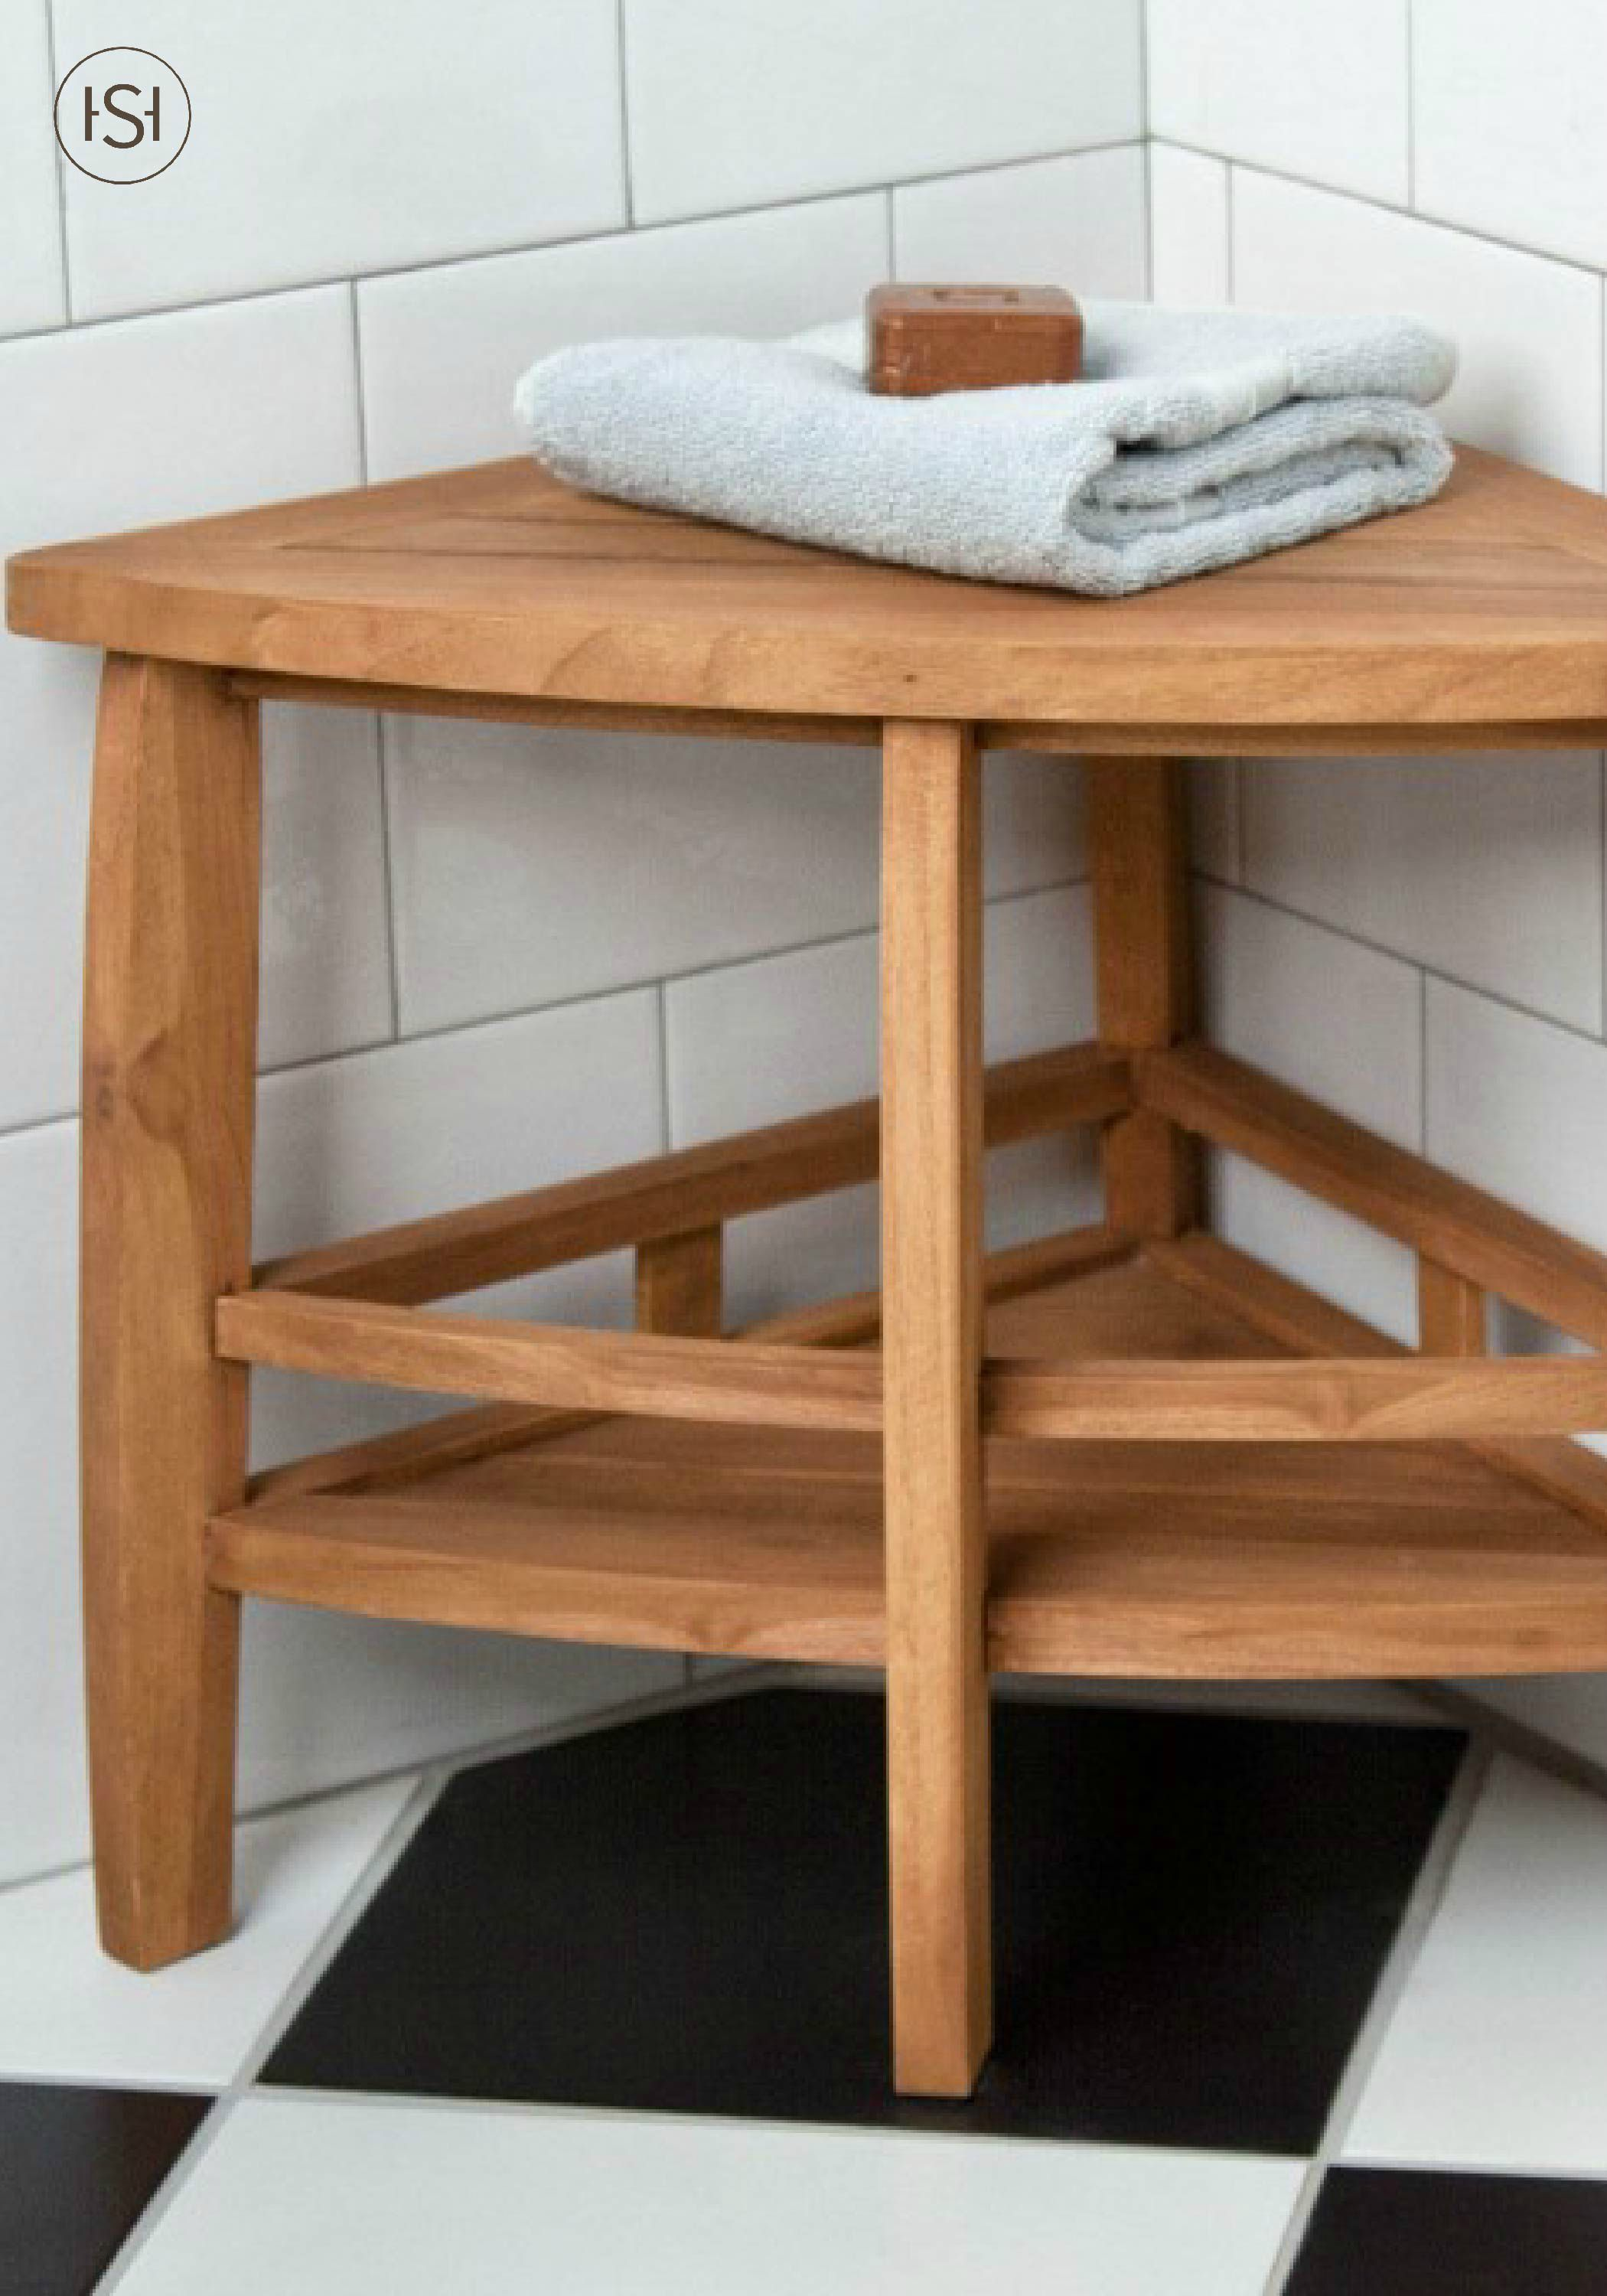 Perfect For A Walk In Shower This Teak Wood Corner Seat Adds Spa Like Feel To Your Showering Experience Finish Modern Bathroom With